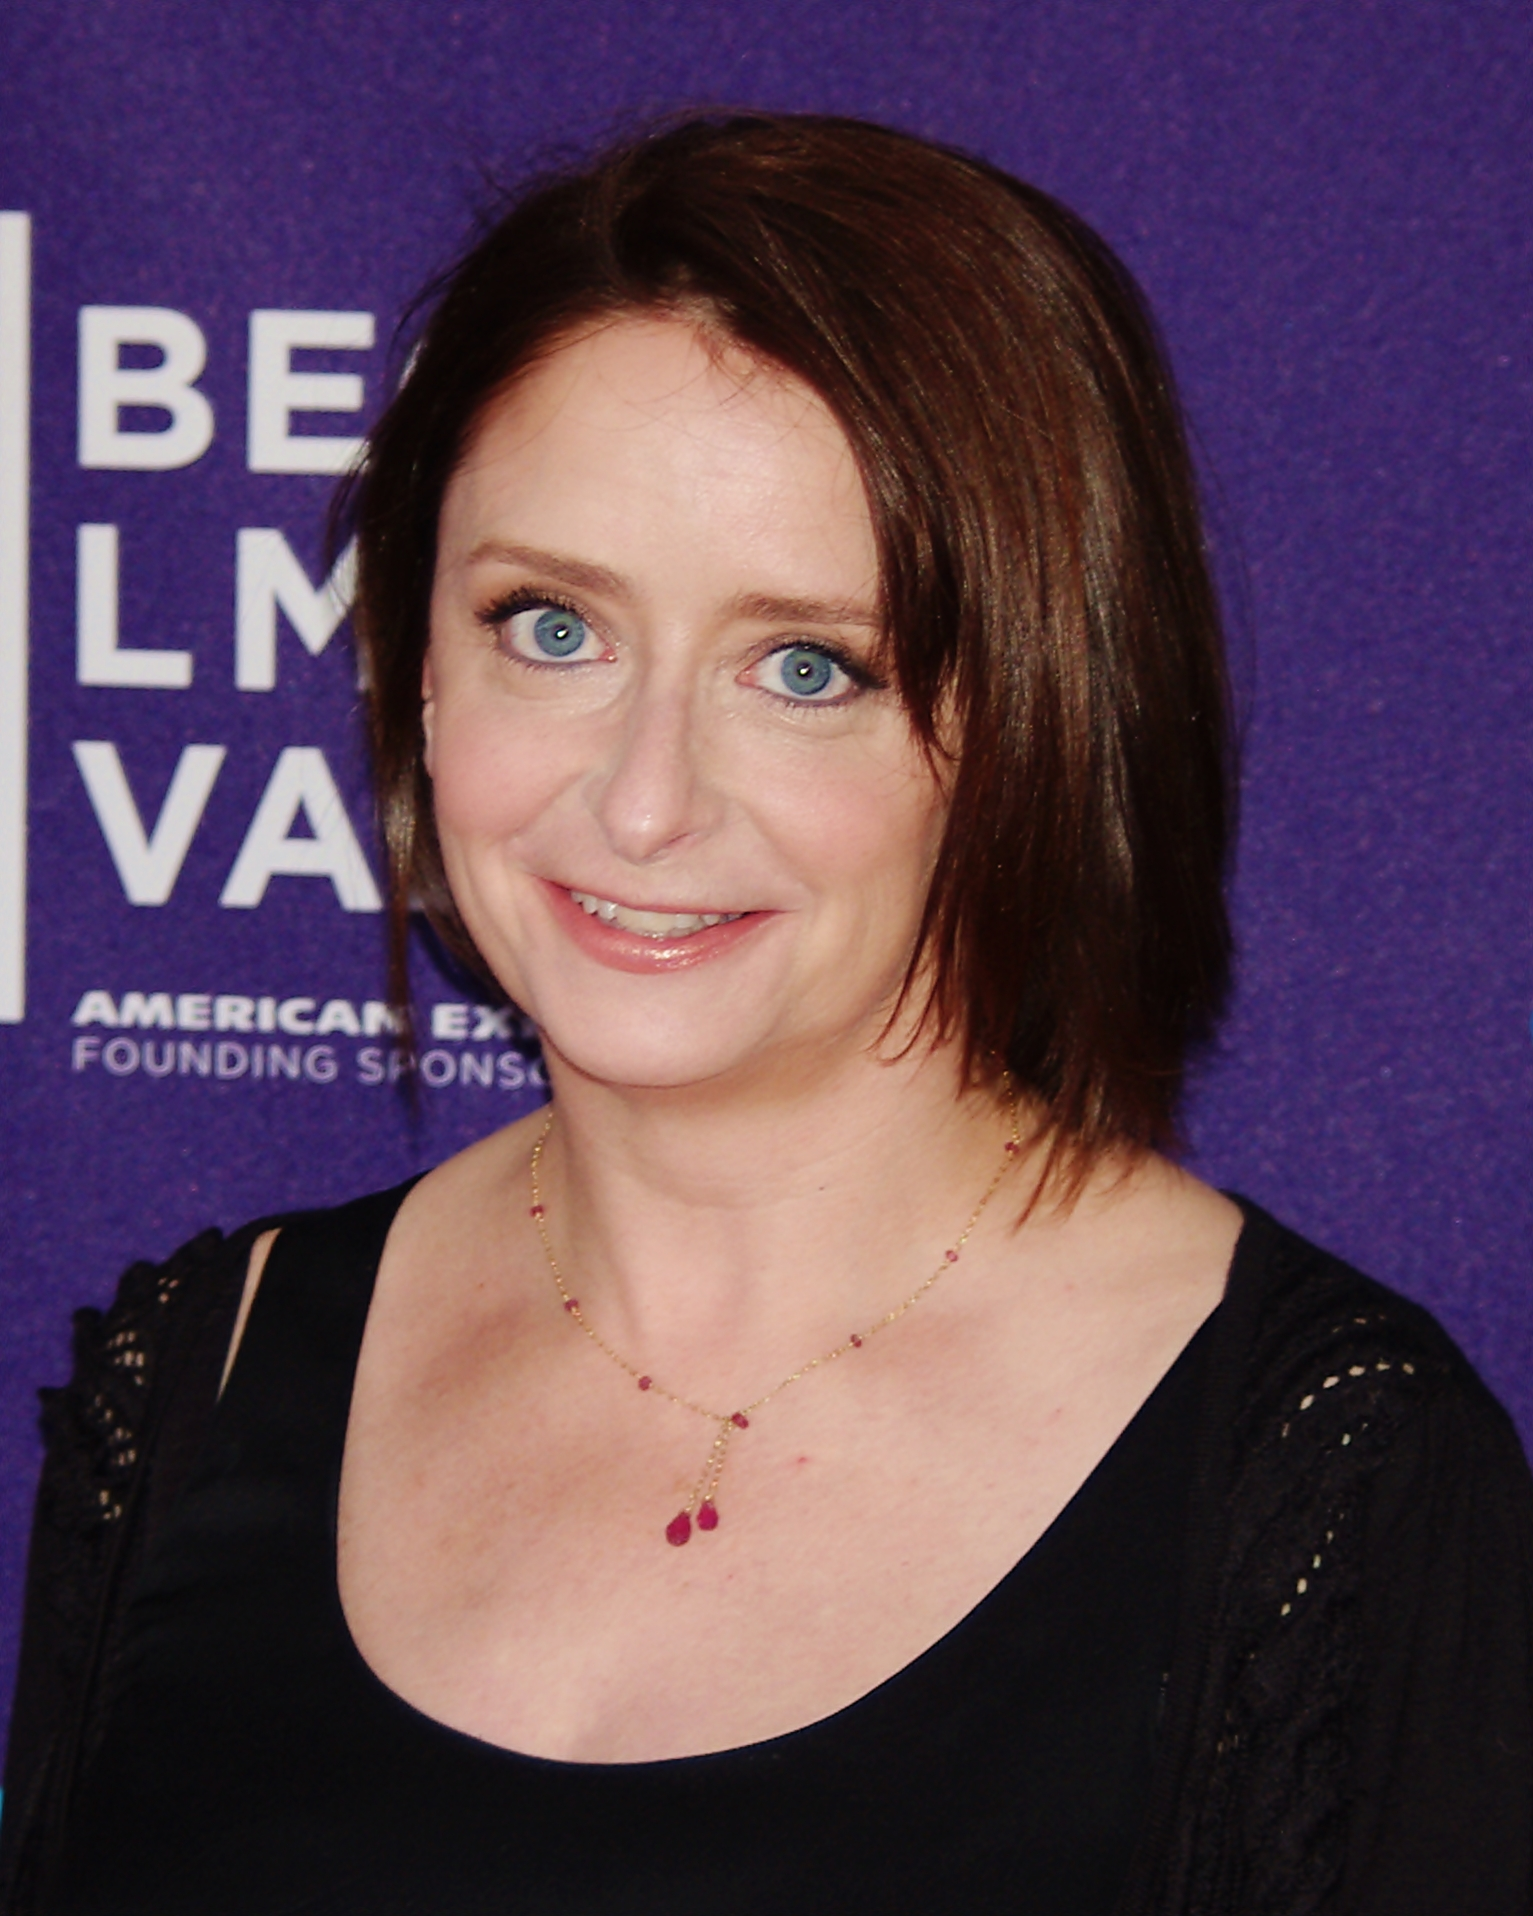 The 52-year old daughter of father Paul Dratch and mother Elaine Ruth  Rachel Dratch in 2019 photo. Rachel Dratch earned a  million dollar salary - leaving the net worth at 3 million in 2019